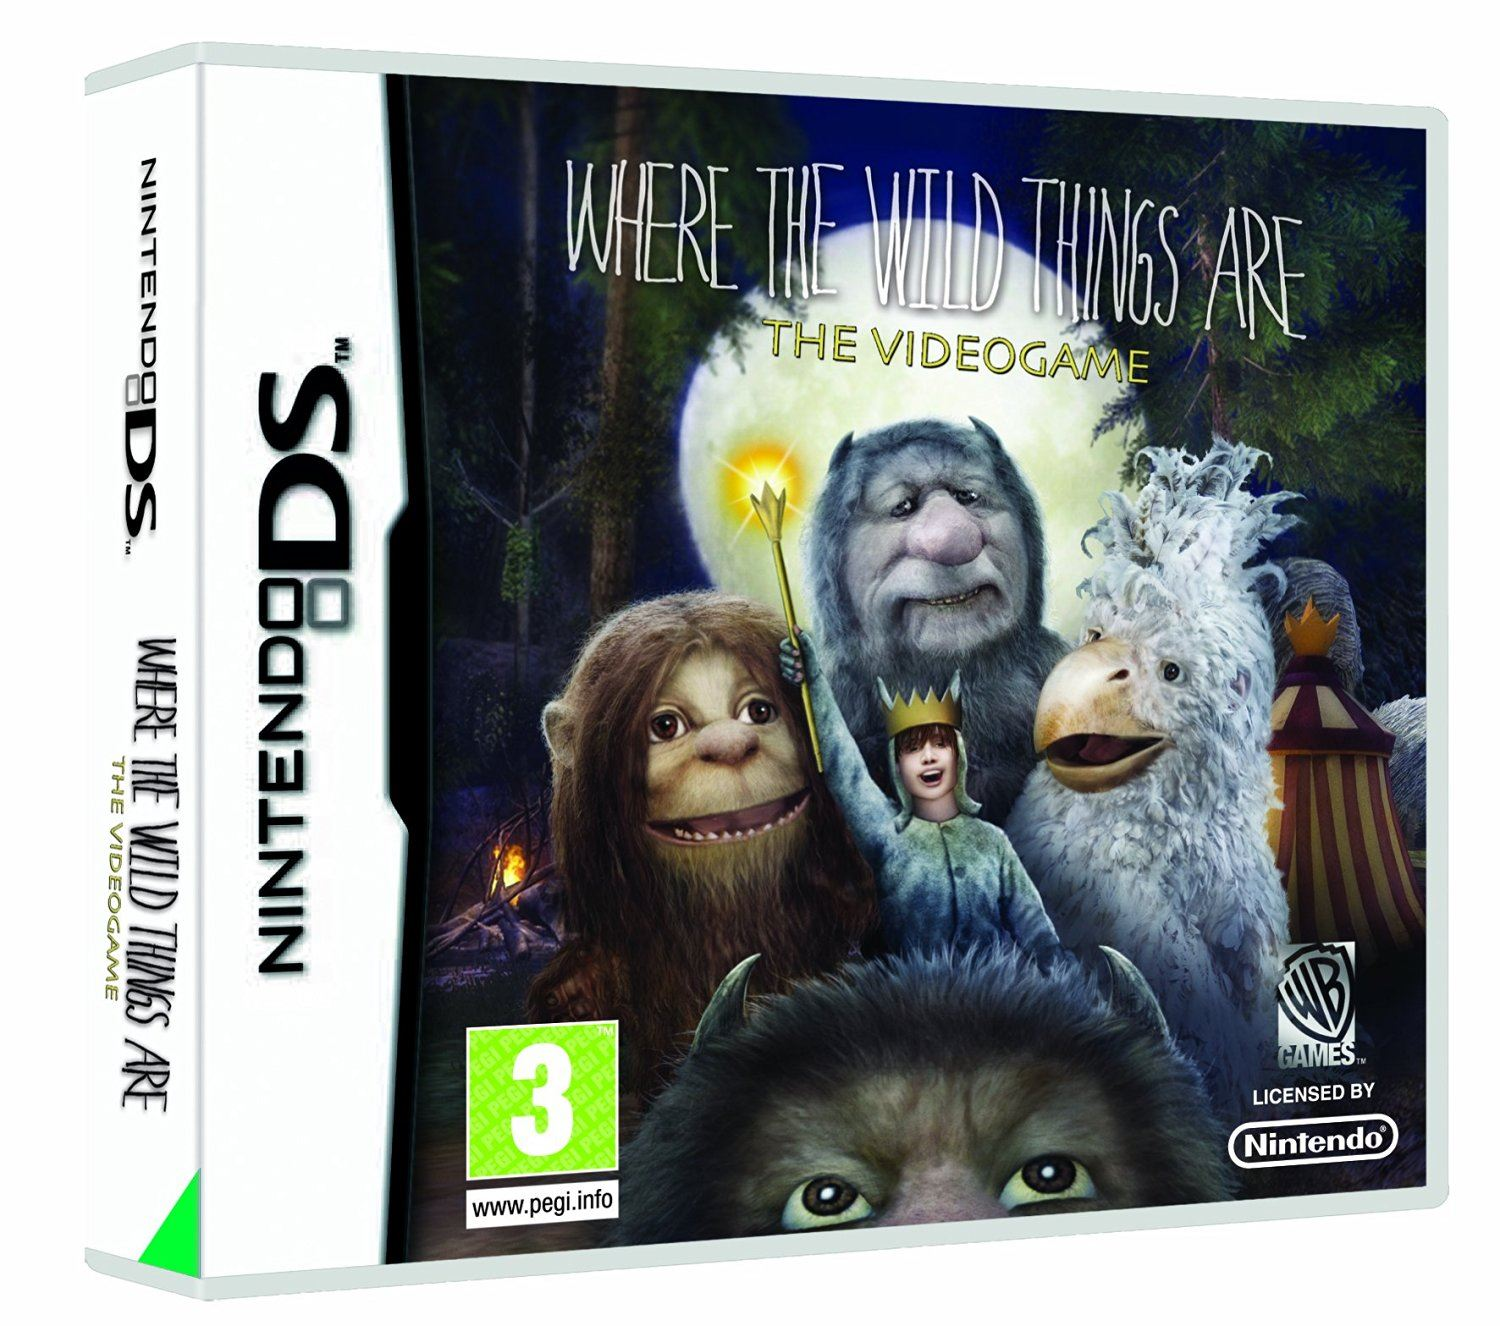 Where the Wild Things Are (2009 video game)